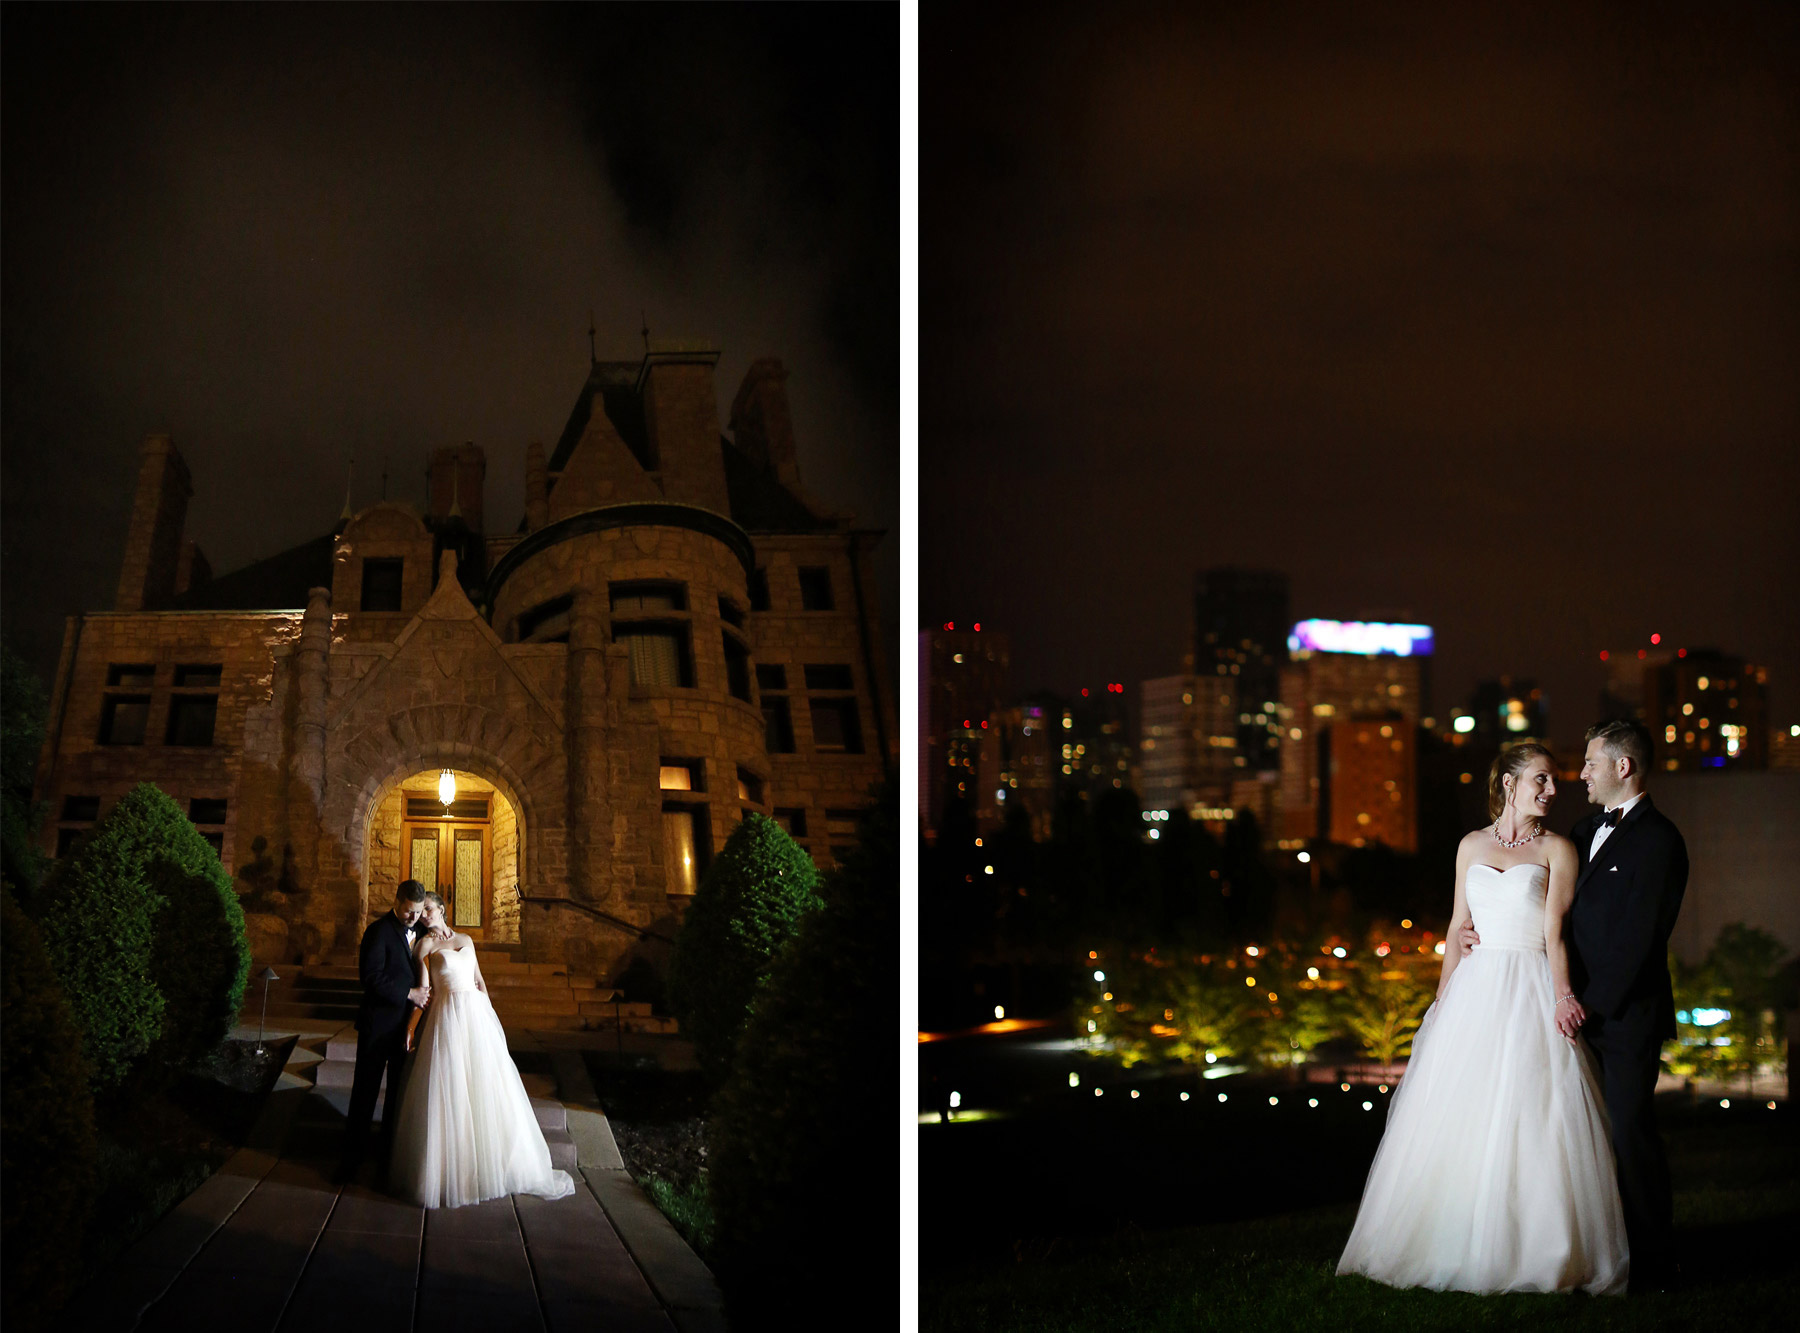 18-Minneapolis-Minnesota-Wedding-Photography-by-Vick-Photography--Van-Dusen-Mansion-Outdoor-Night-Photos.jpg